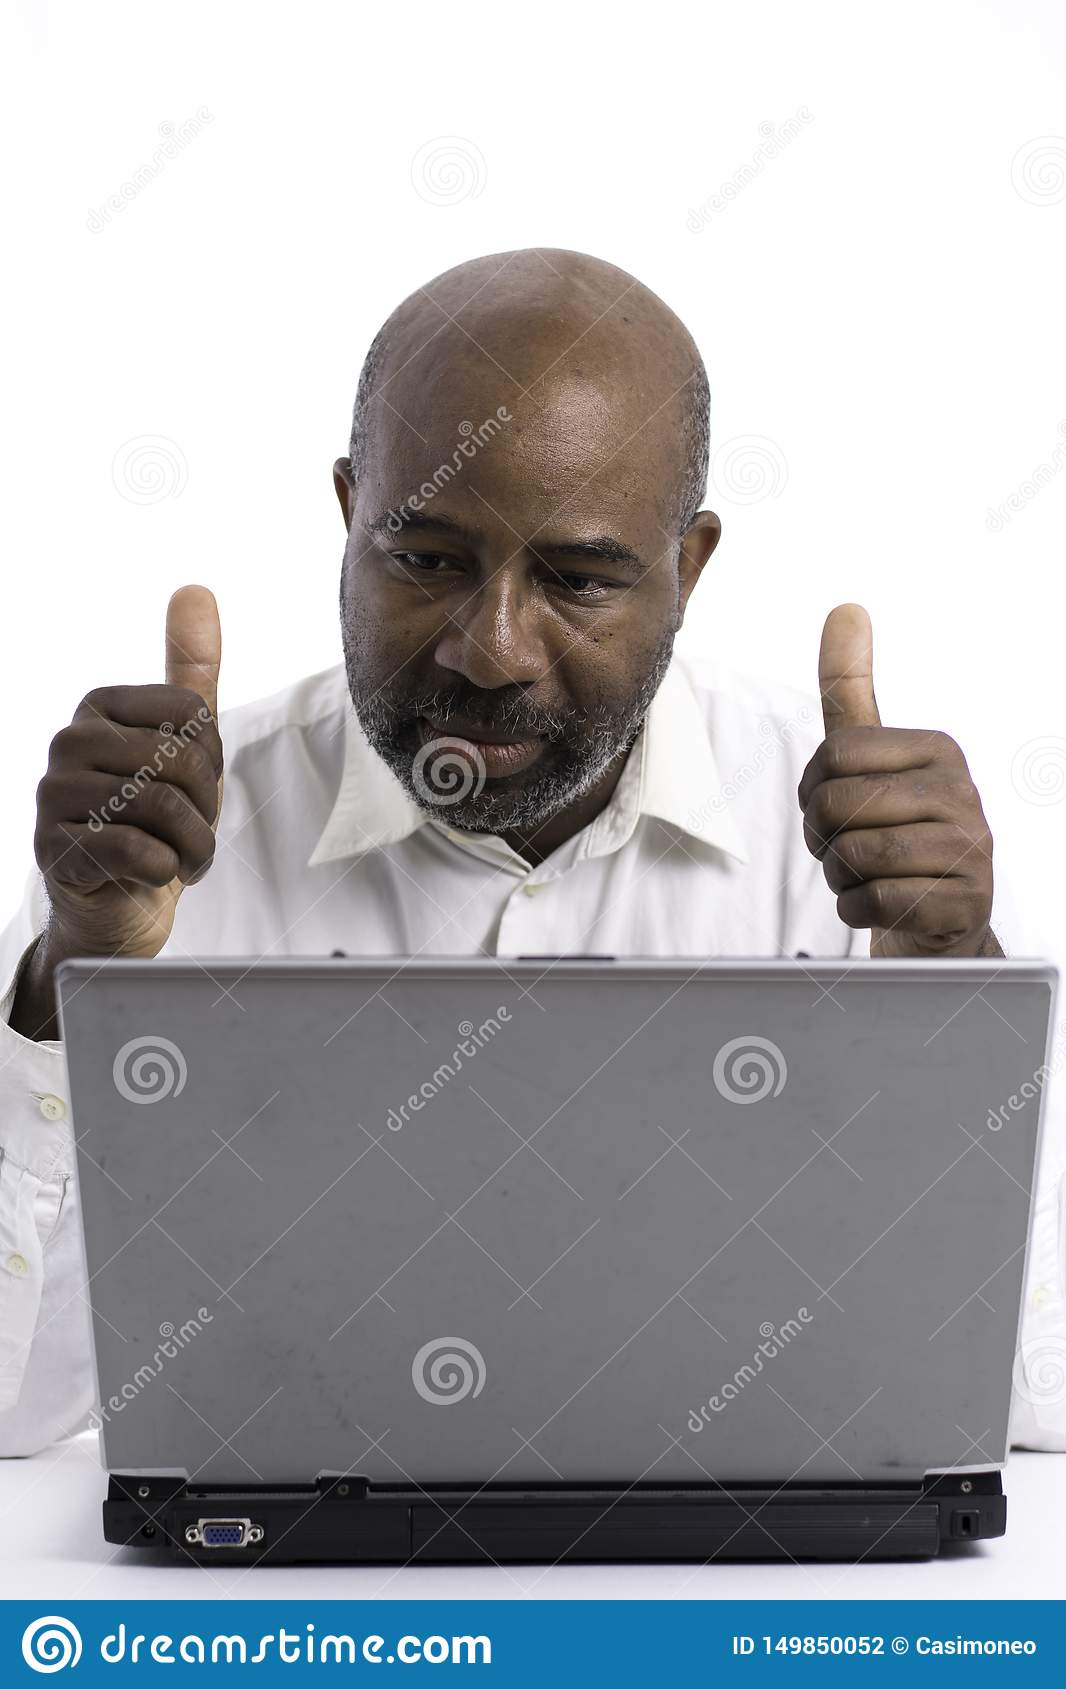 Portrait of a confident African American software expert signaling ok with thumbs up while sitting front of a laptop computer.